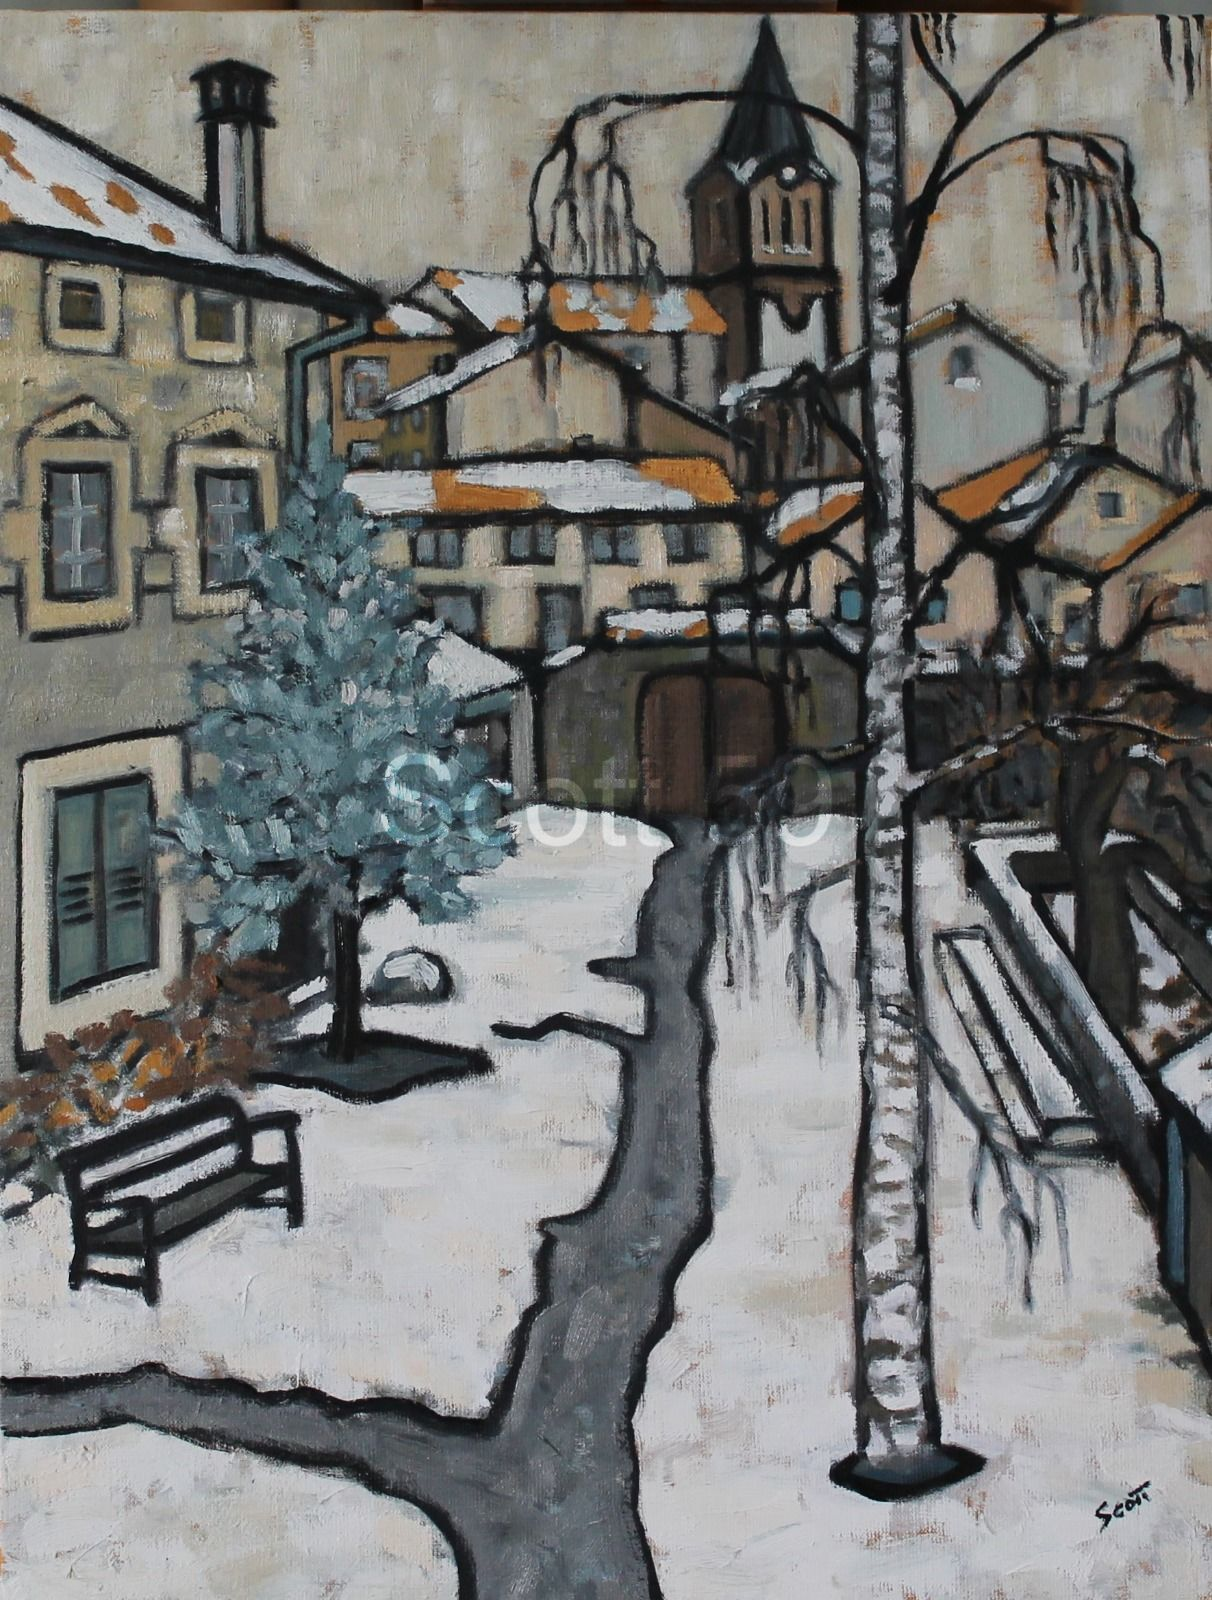 L'Ancienne ecole sous la neige (Oil on canvas) SOLD